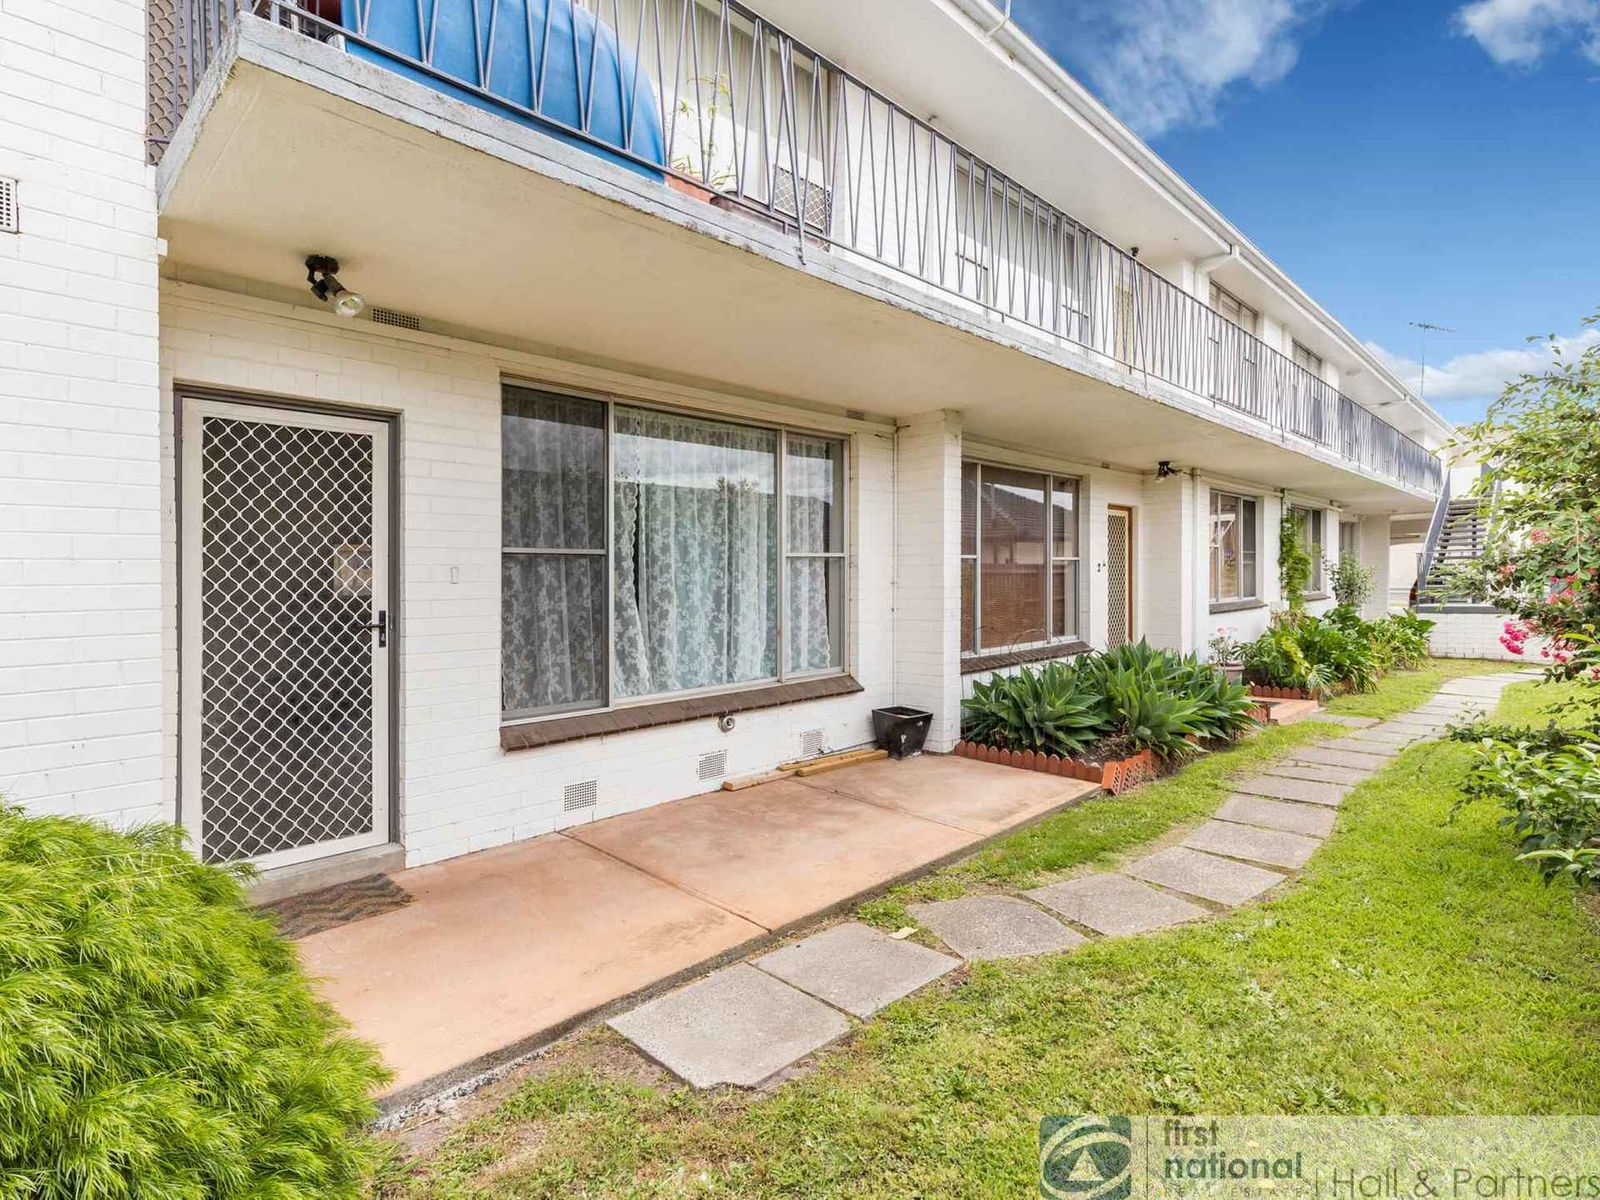 3/104 David Street, Dandenong, VIC 3175